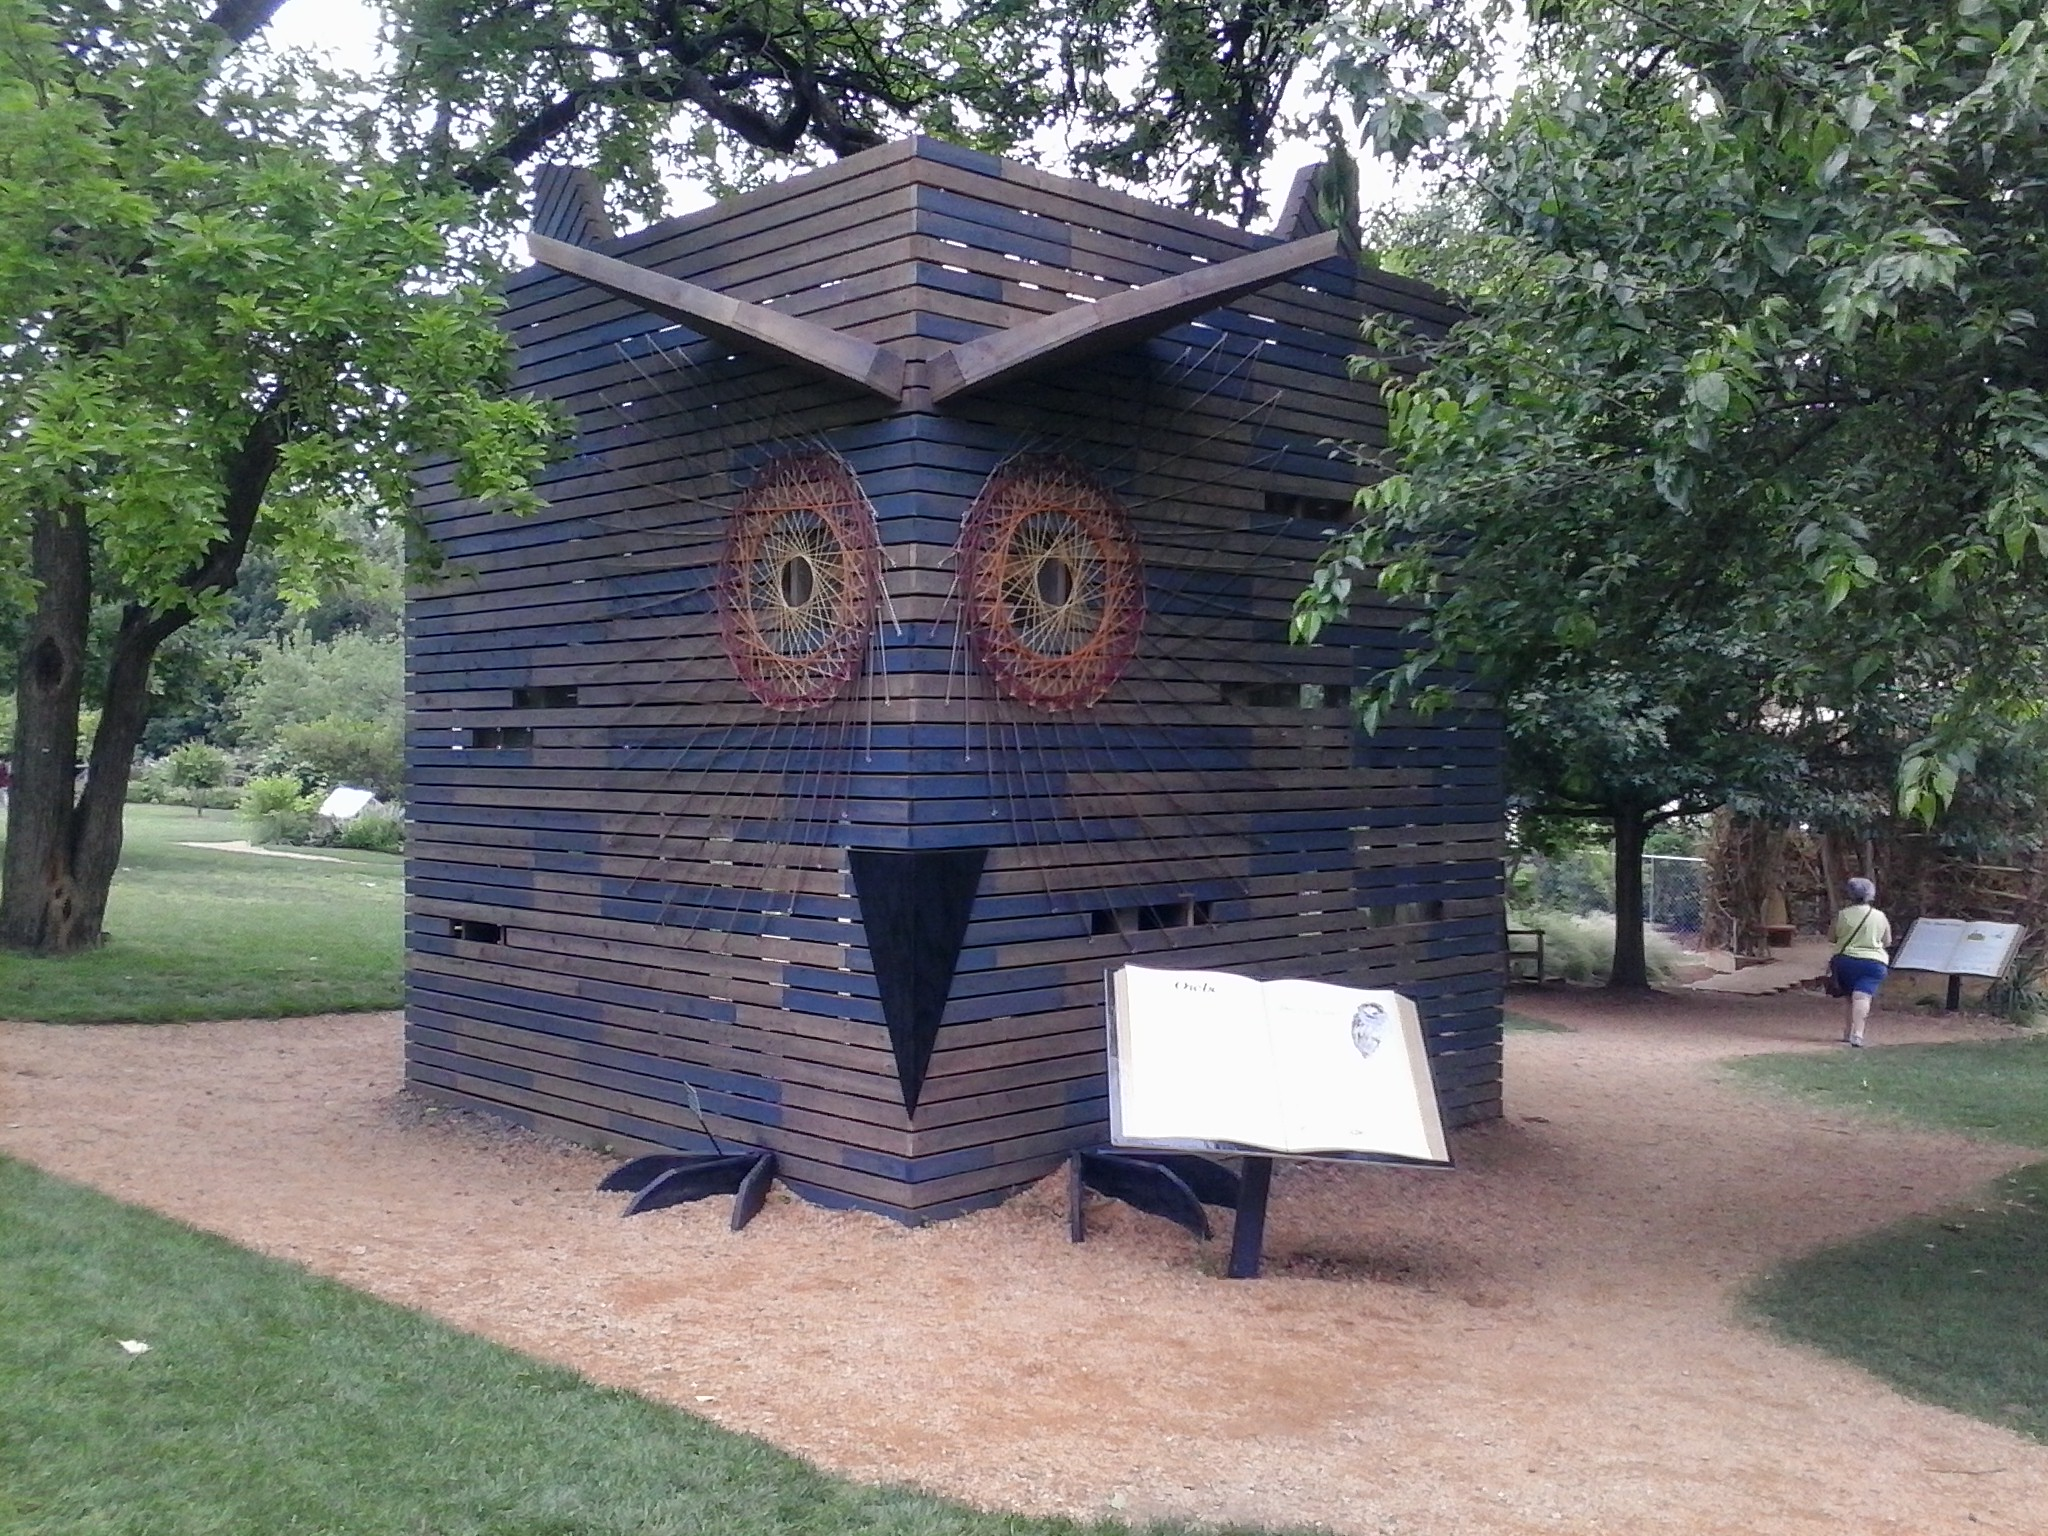 An owl-shaped house in the bird exhibit.